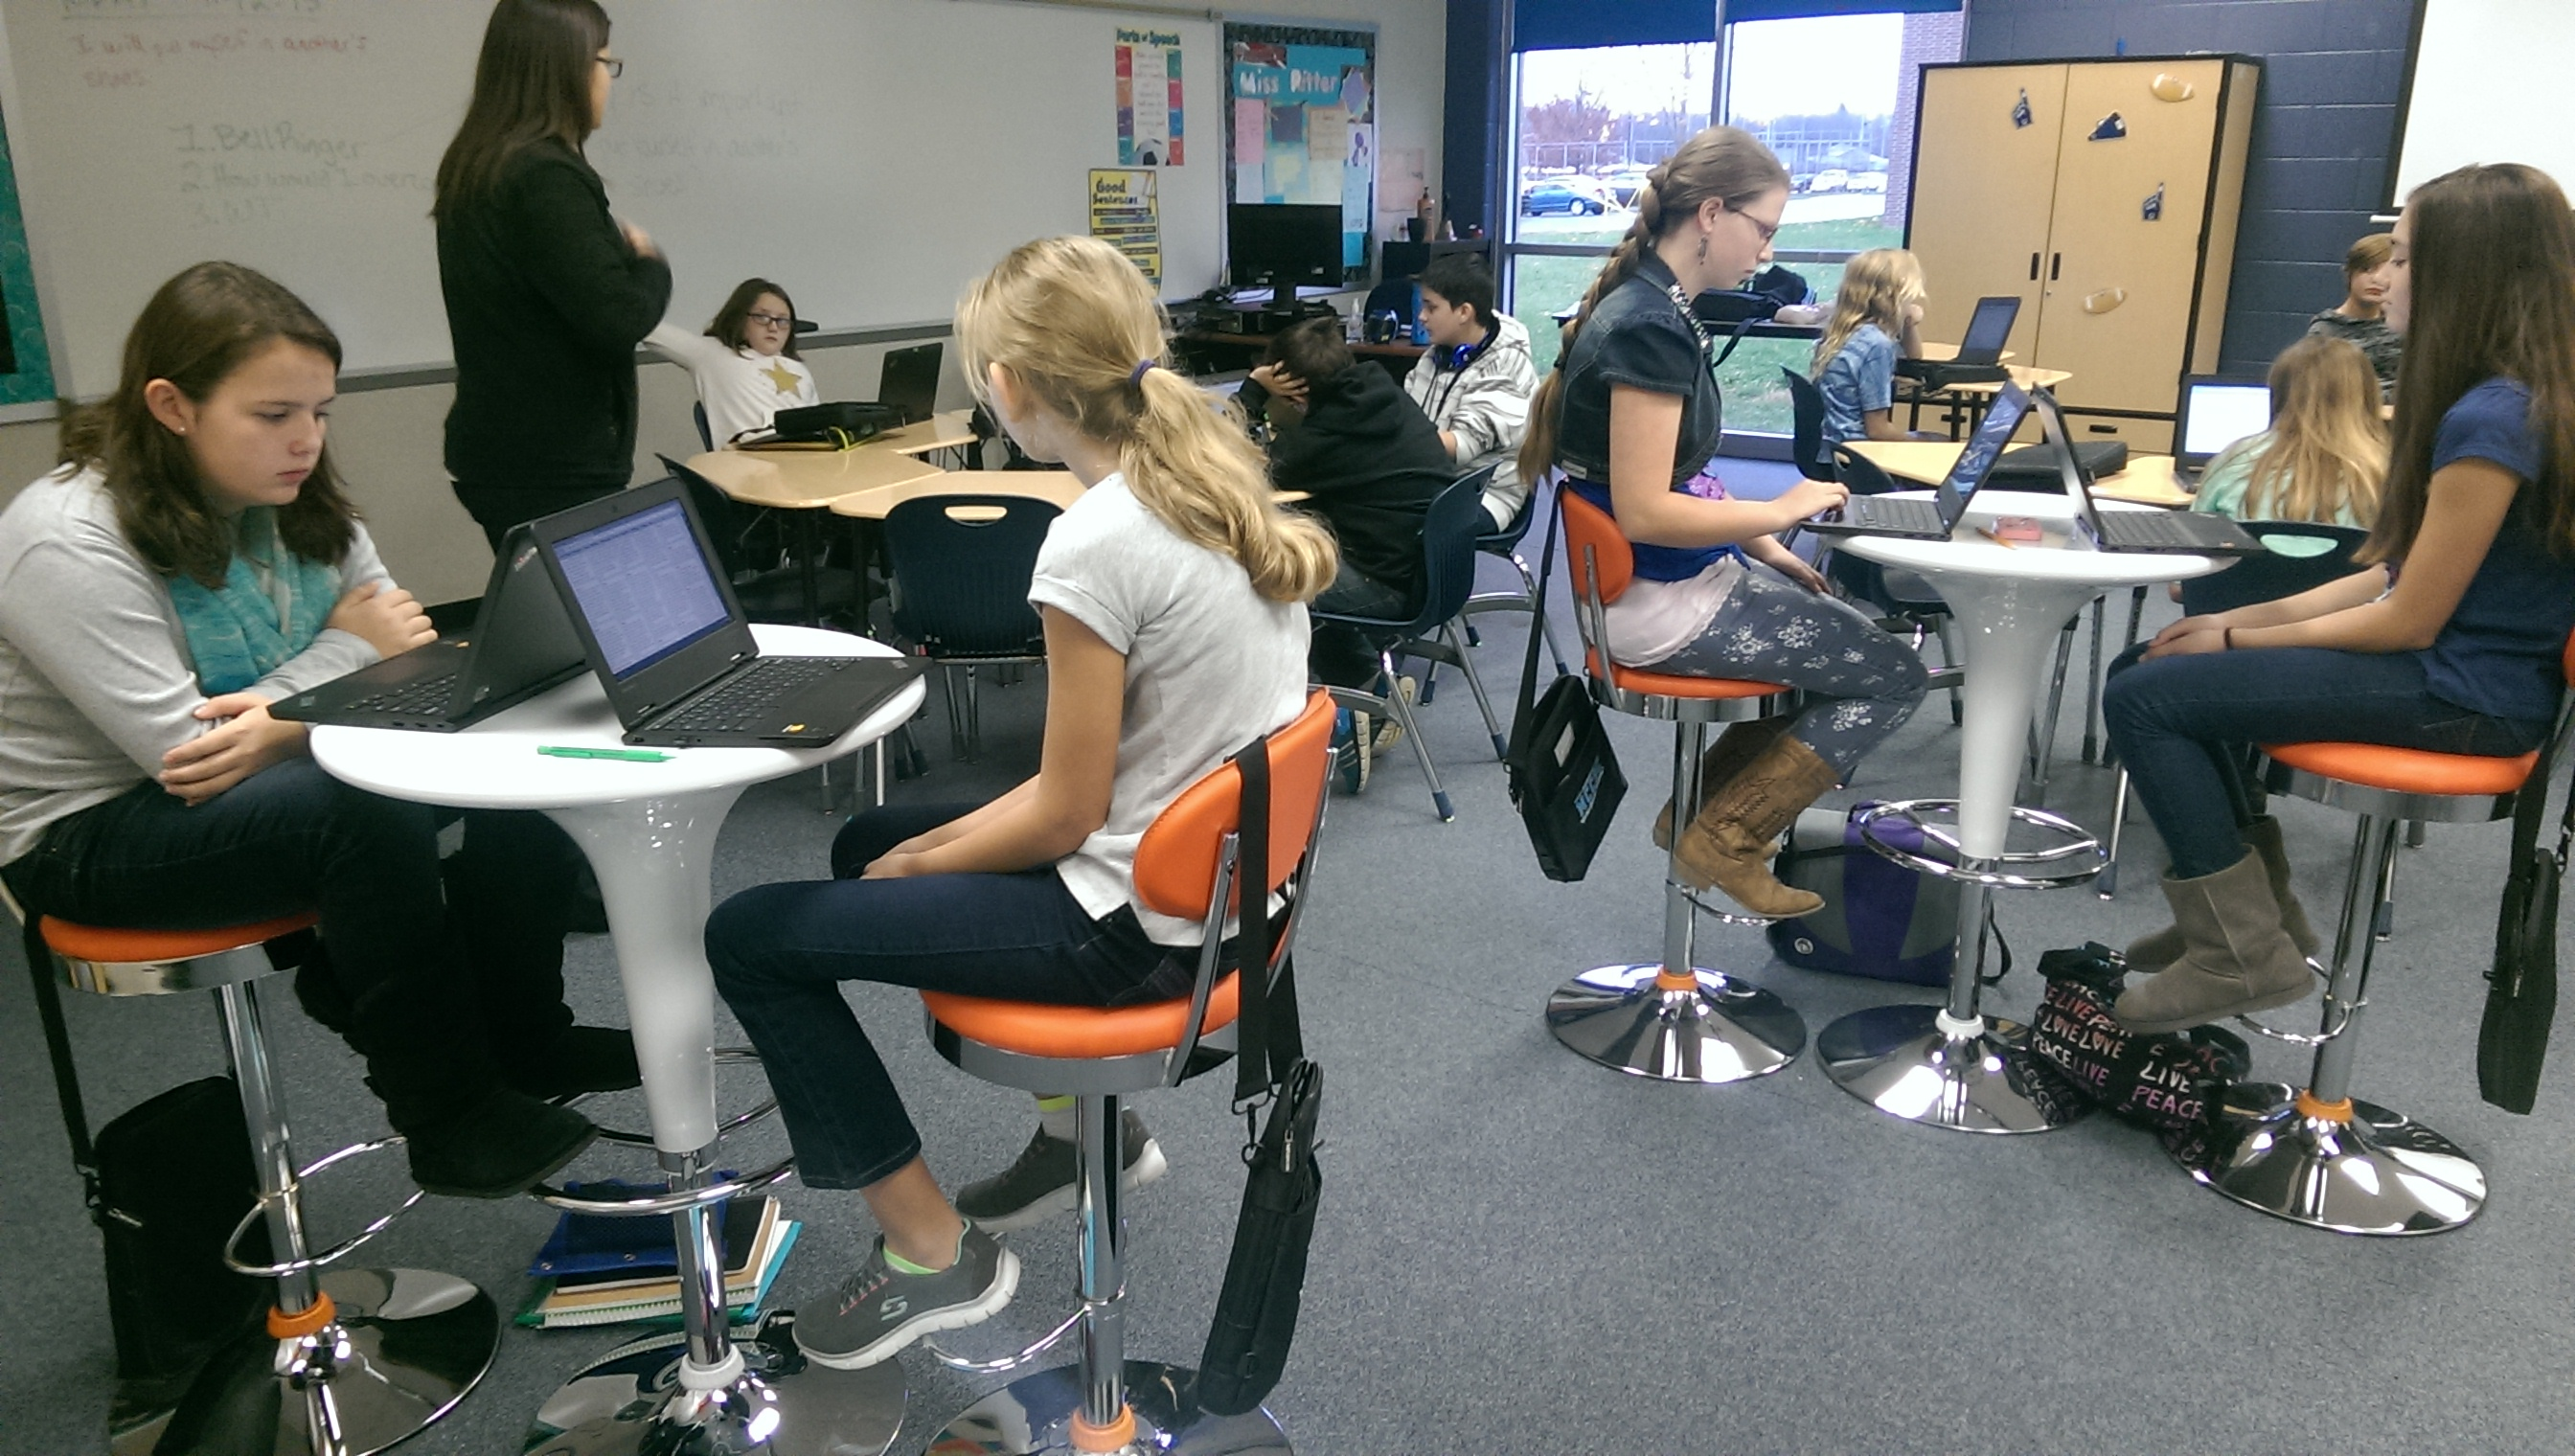 Students At Cascade Middle School Test Out New Classroom Furniture Donated  By Orange Leaf Frozen Yogurt